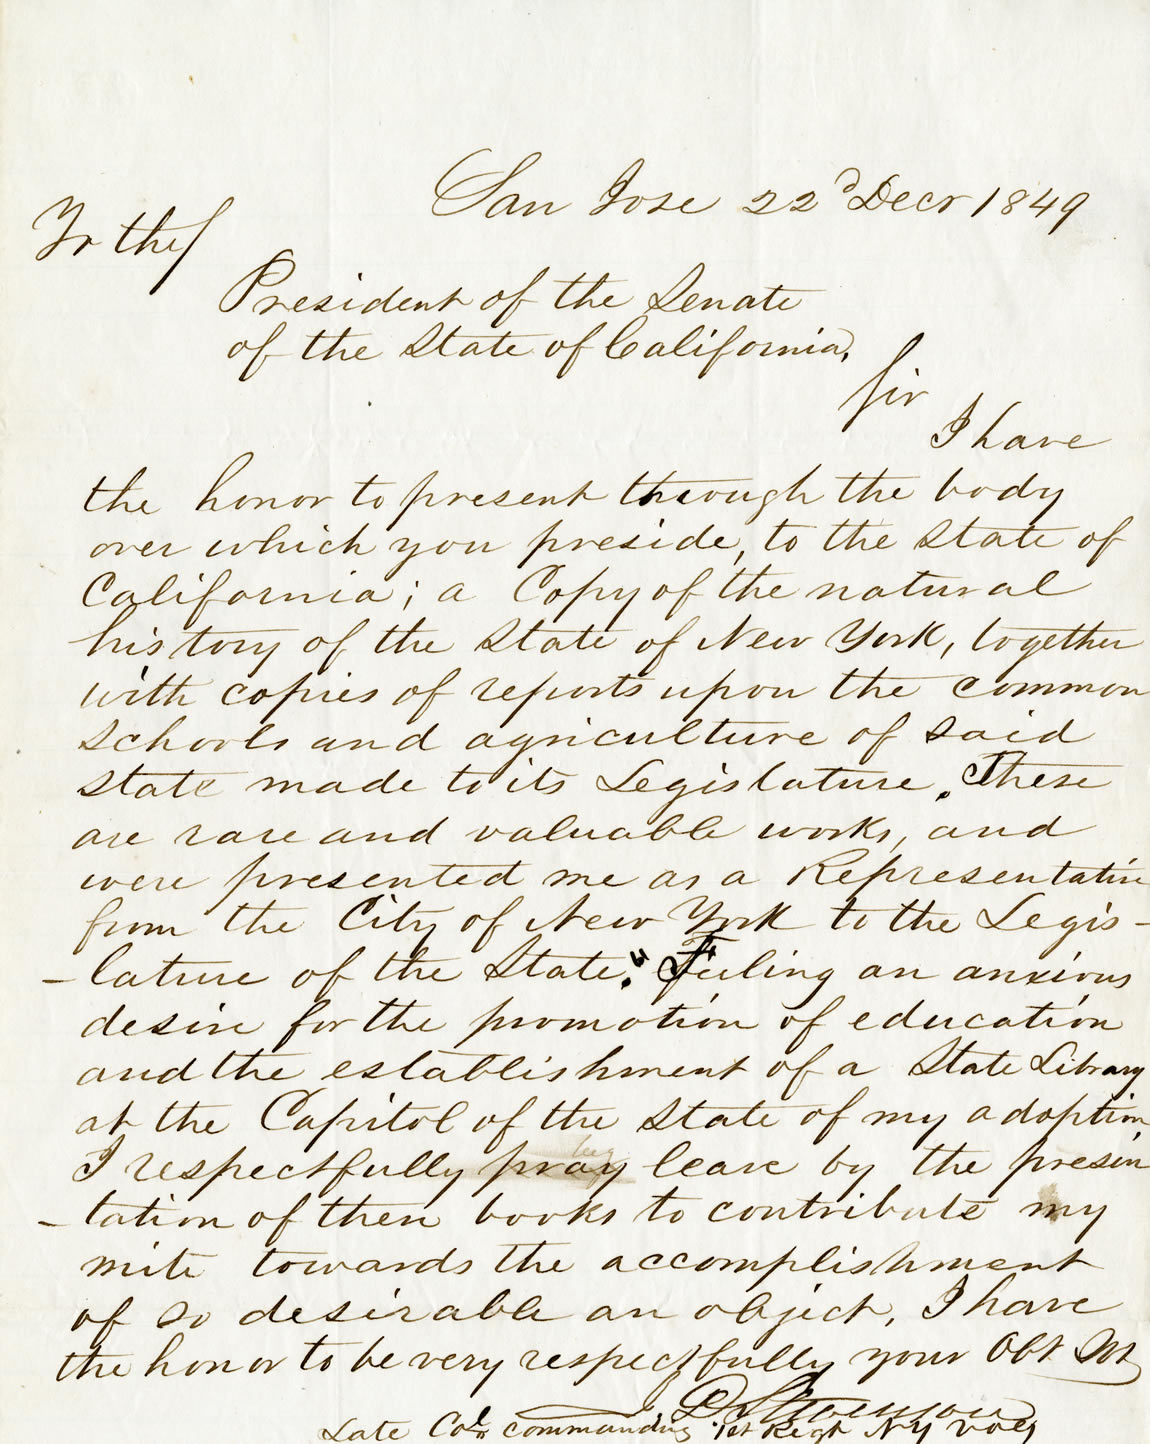 Colonel Jonathan Stevenson letter regarding the first book donated to the State Library, 1849